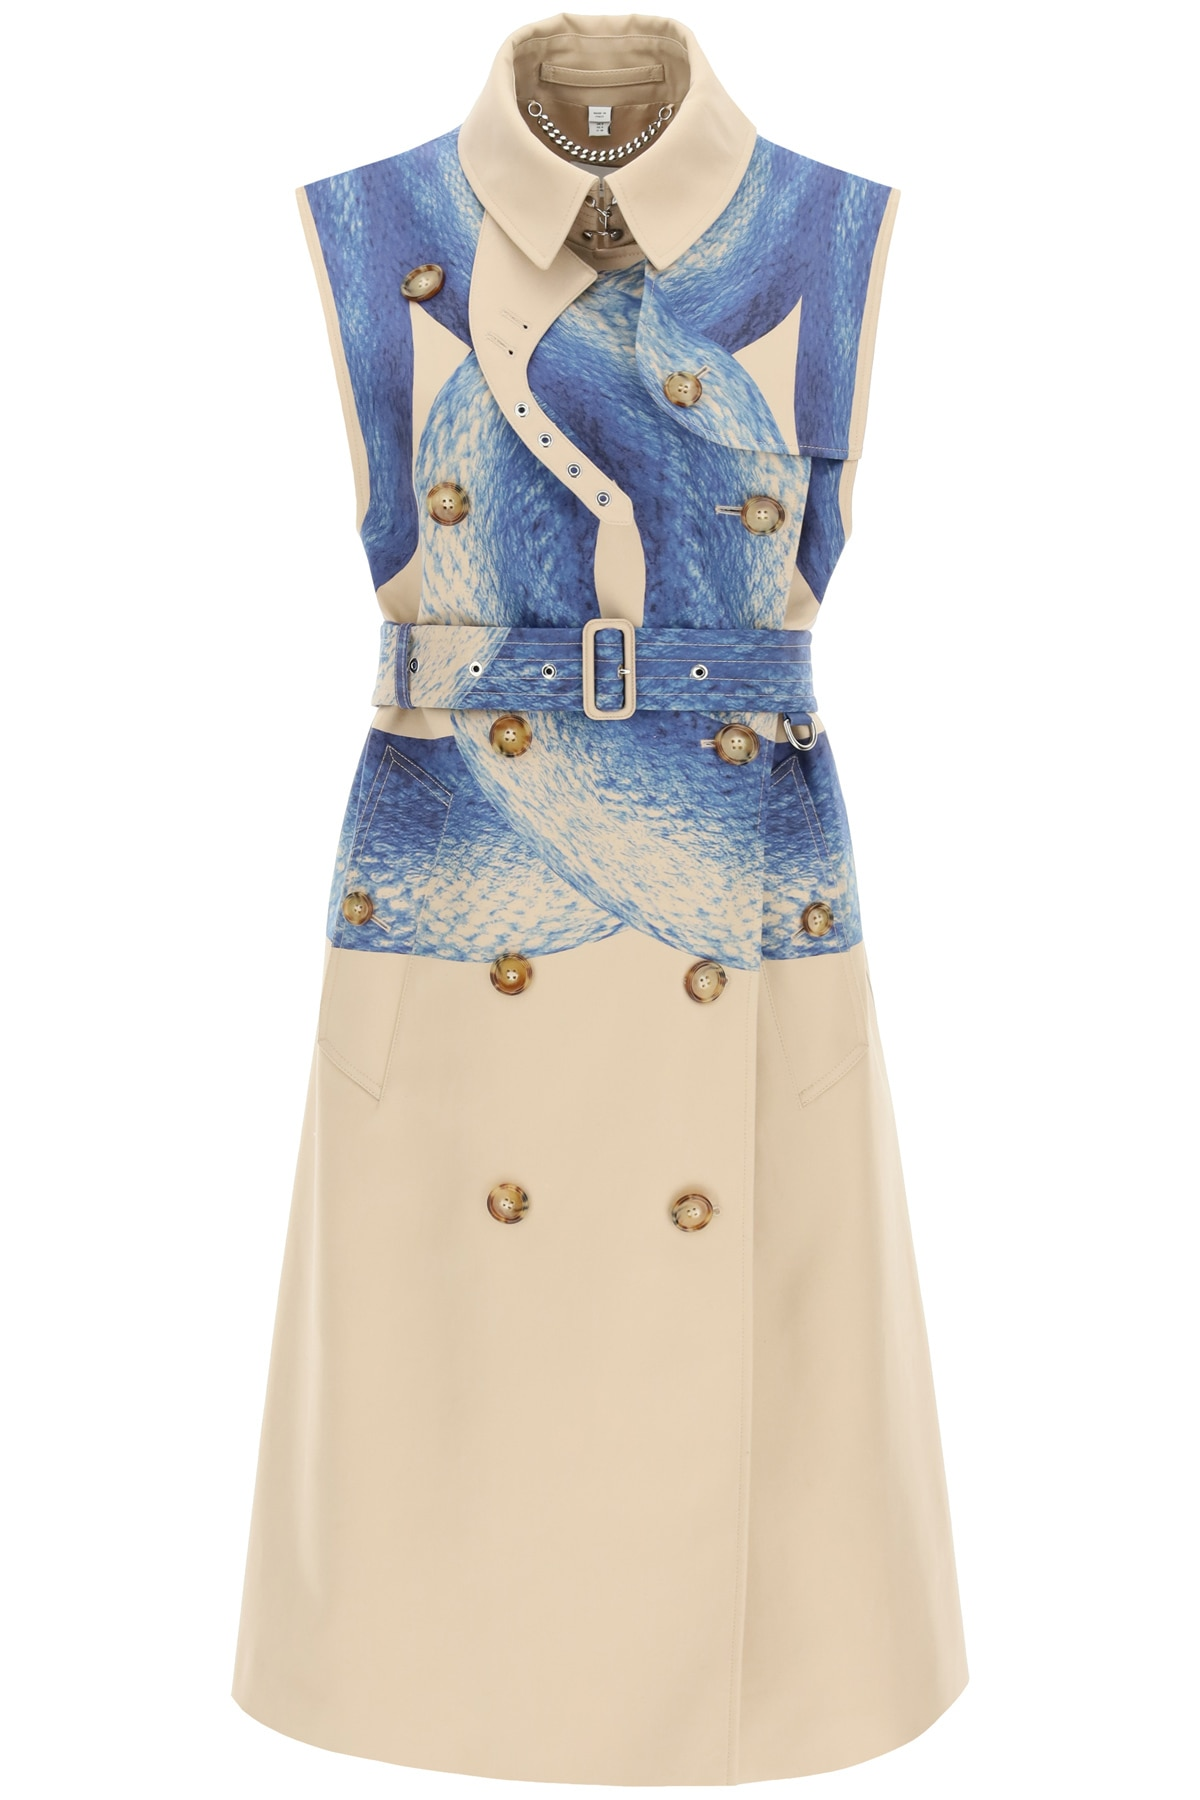 BURBERRY SLEEVELESS TRENCH COAT WITH MERMAID PRINT 4 Beige, Blue Cotton